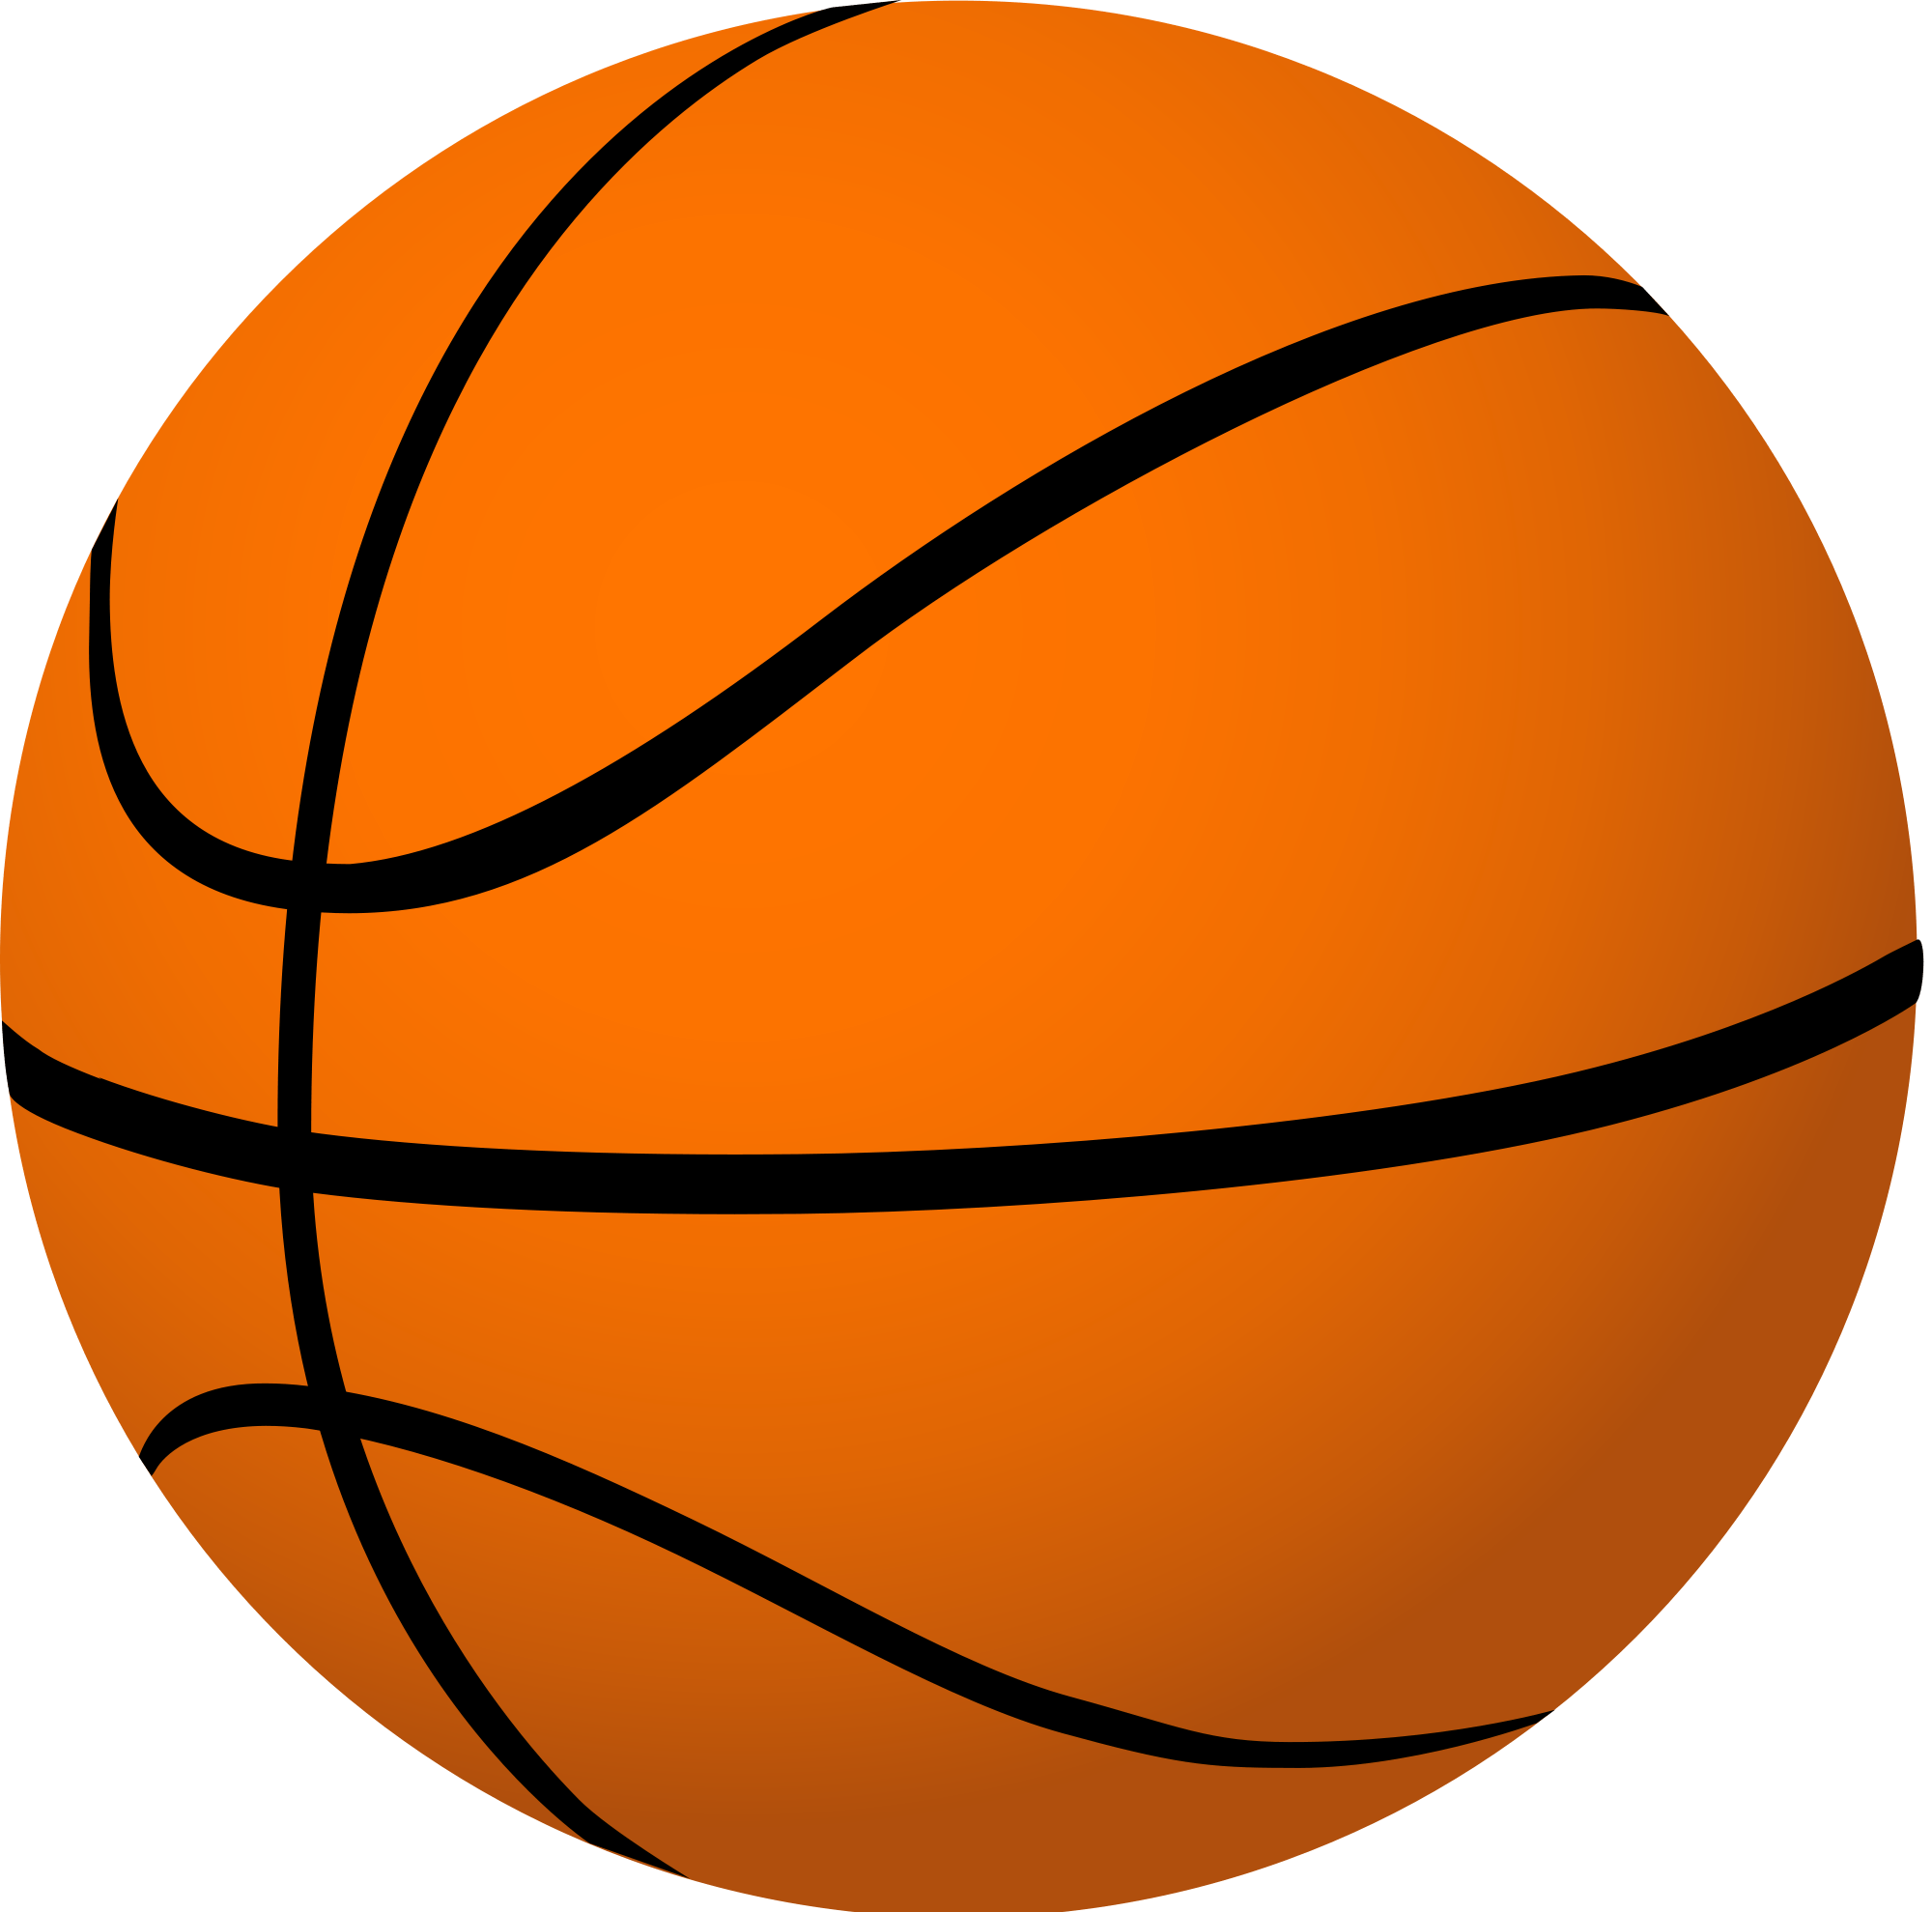 Outdoor basketball court clipart image freeuse stock Beaufiful Indoor Soccer Goal Size. 11 Football Ground Clip Art at ... image freeuse stock